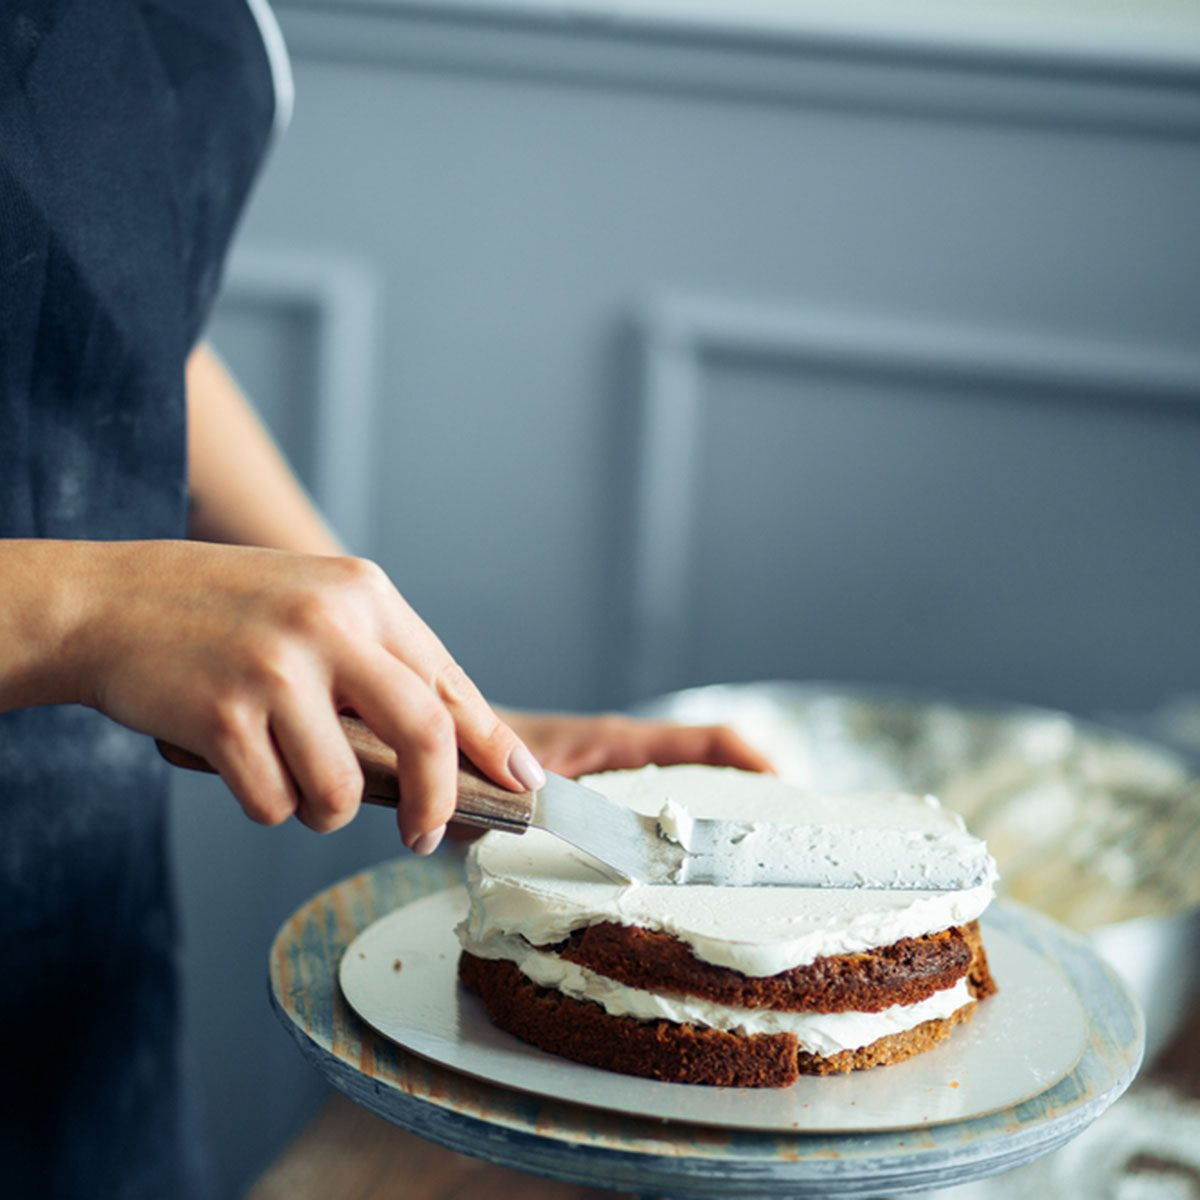 Woman Carefully Icing The Cake And Decorating; Shutterstock ID 649601008